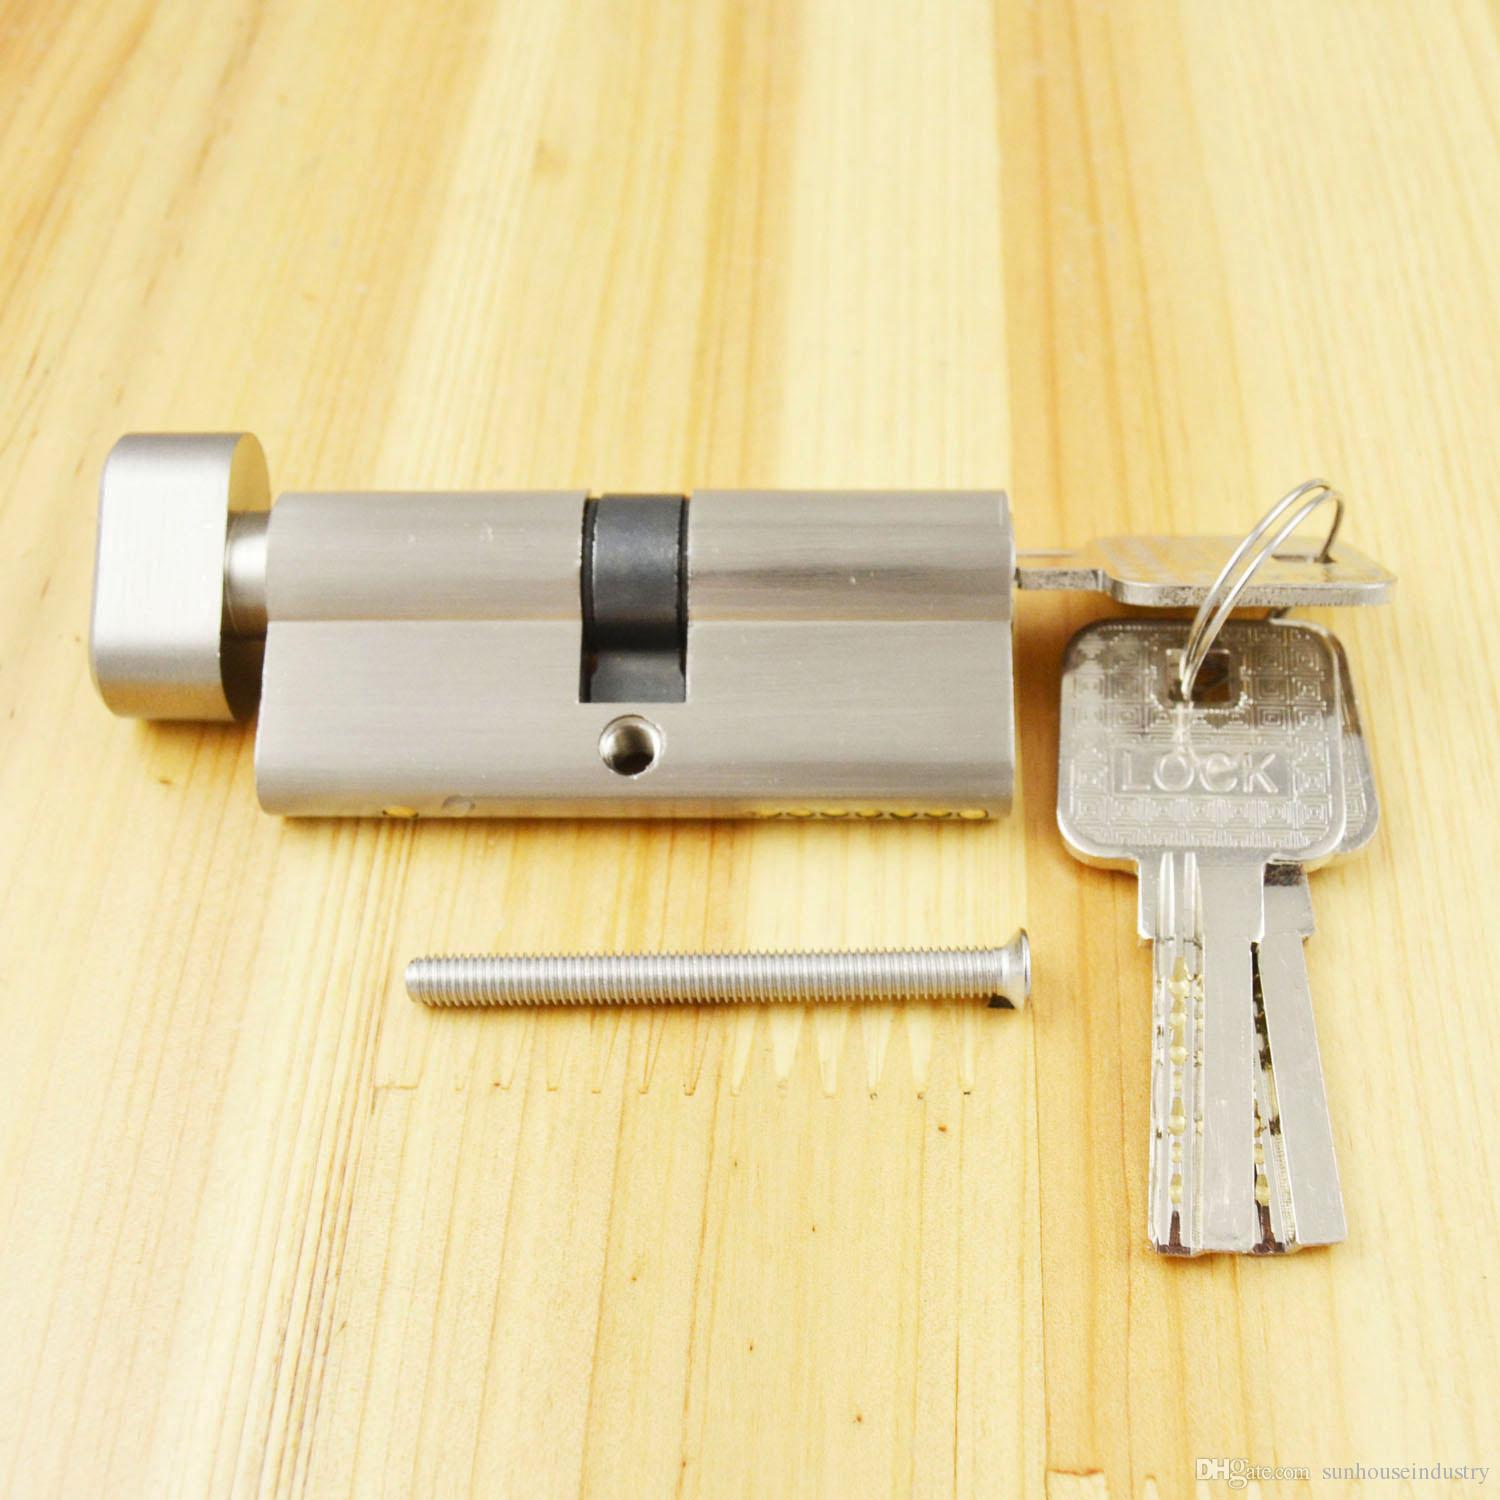 hight resolution of 2019 lock cylinder thumb turn cylinder 70mm35 35 lock cylinder with knob with 3 keys brush nickle from sunhouseindustry 6 89 dhgate com